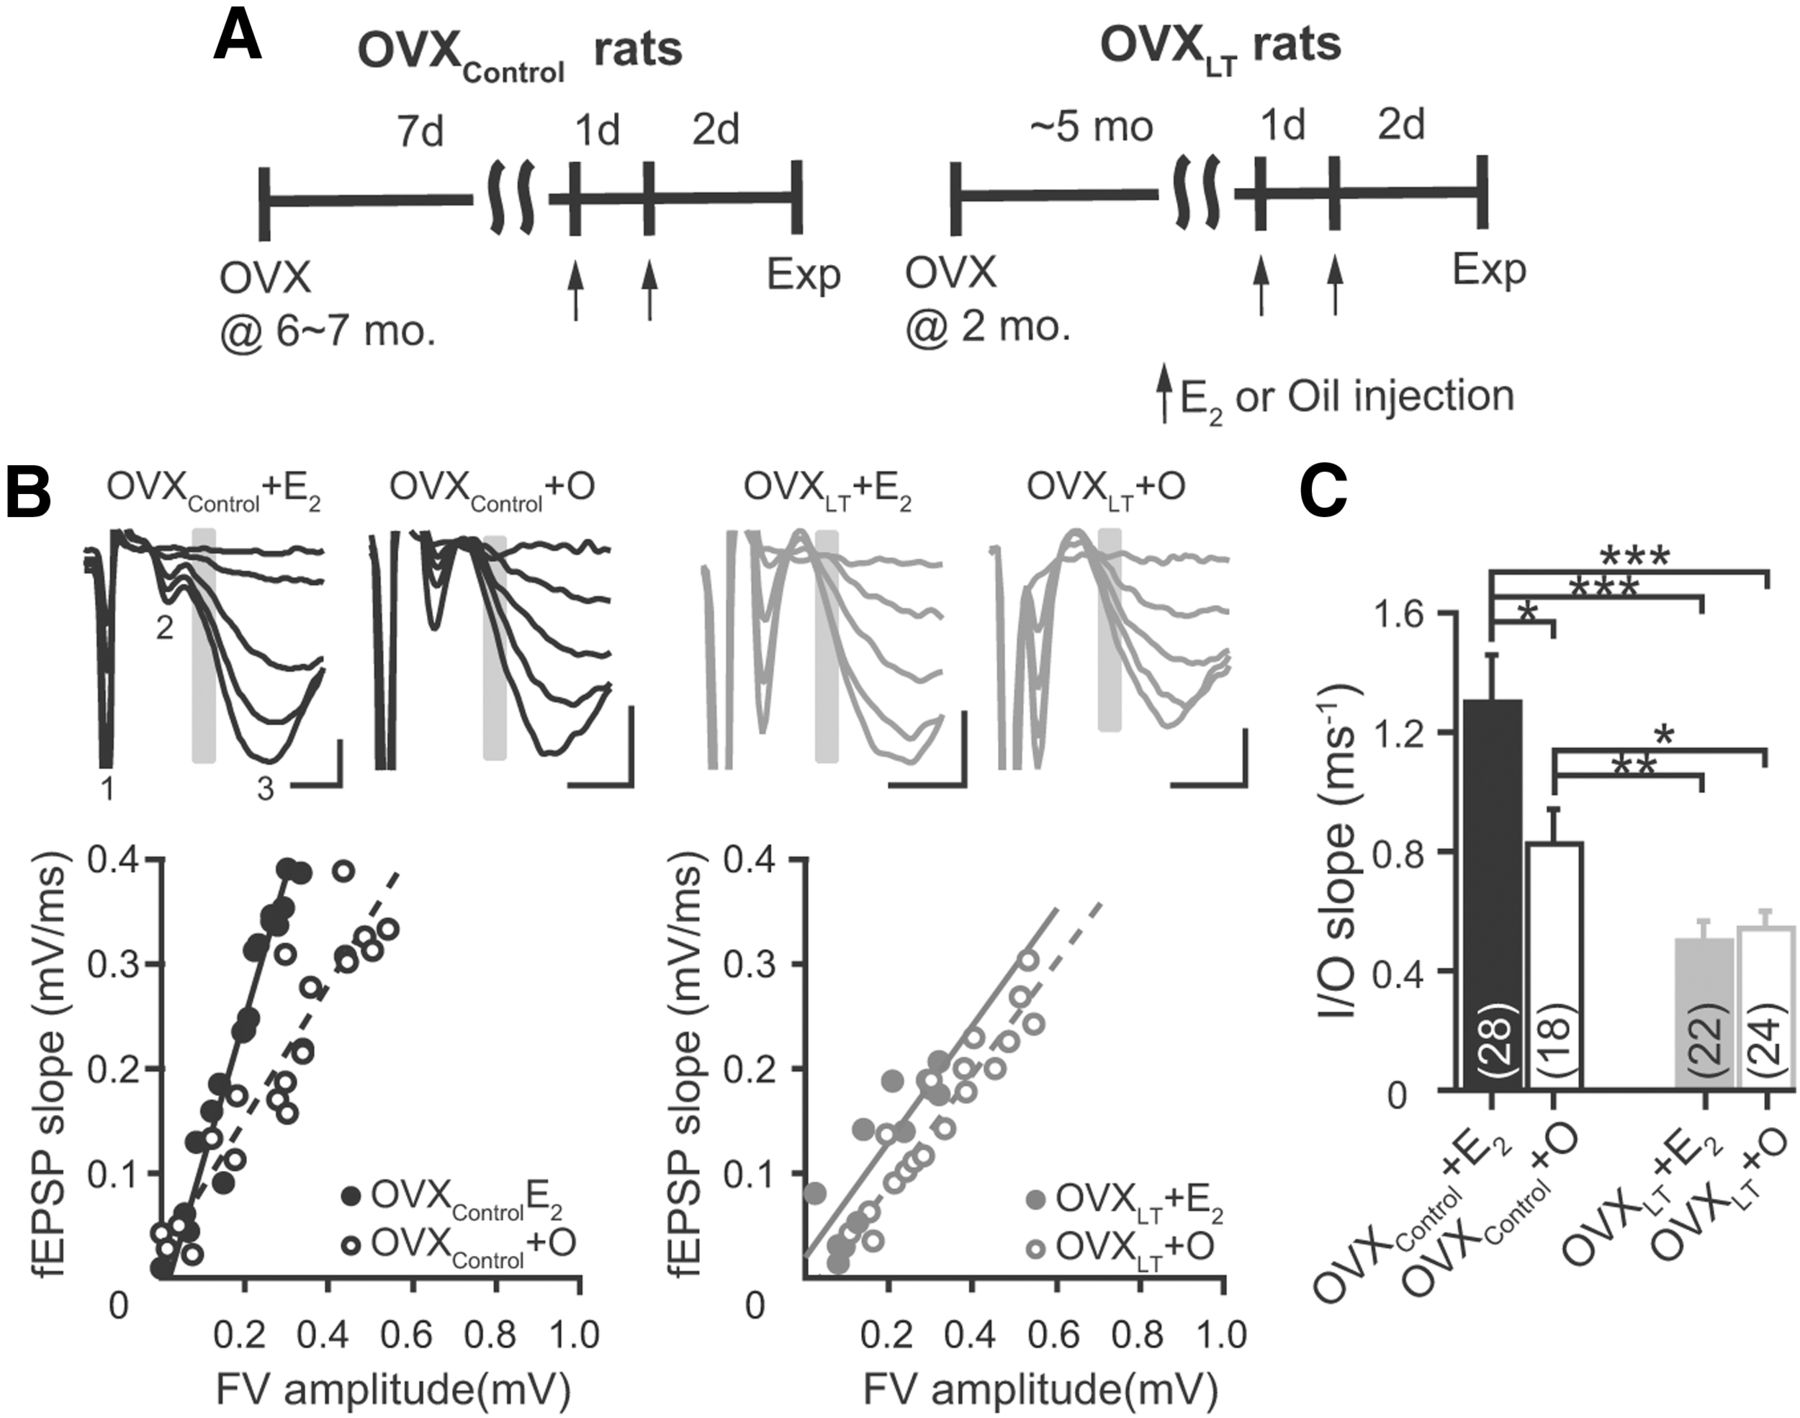 Ovarian Hormone Loss Impairs Excitatory Synaptic Transmission At Old Block Diagram And Pare This With Figure2 The New Download Figure Open In Tab